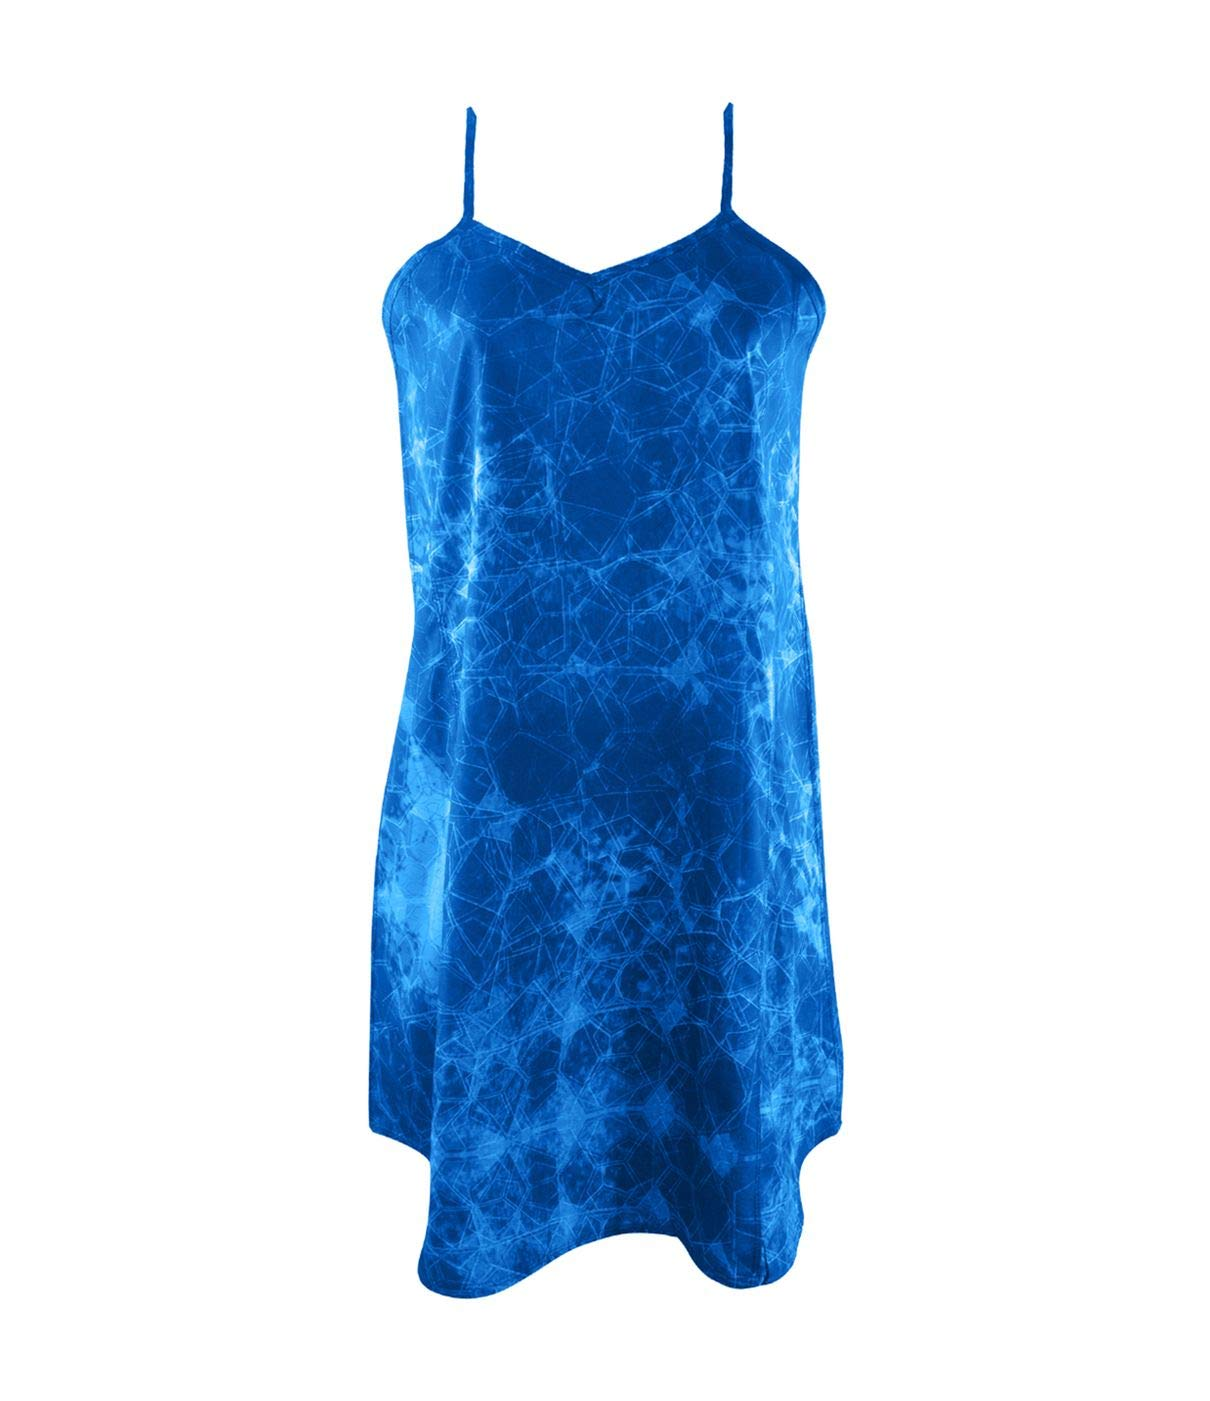 PELAGIC Balboa Performance Dress - Hex | X-Small | Blue by PELAGIC